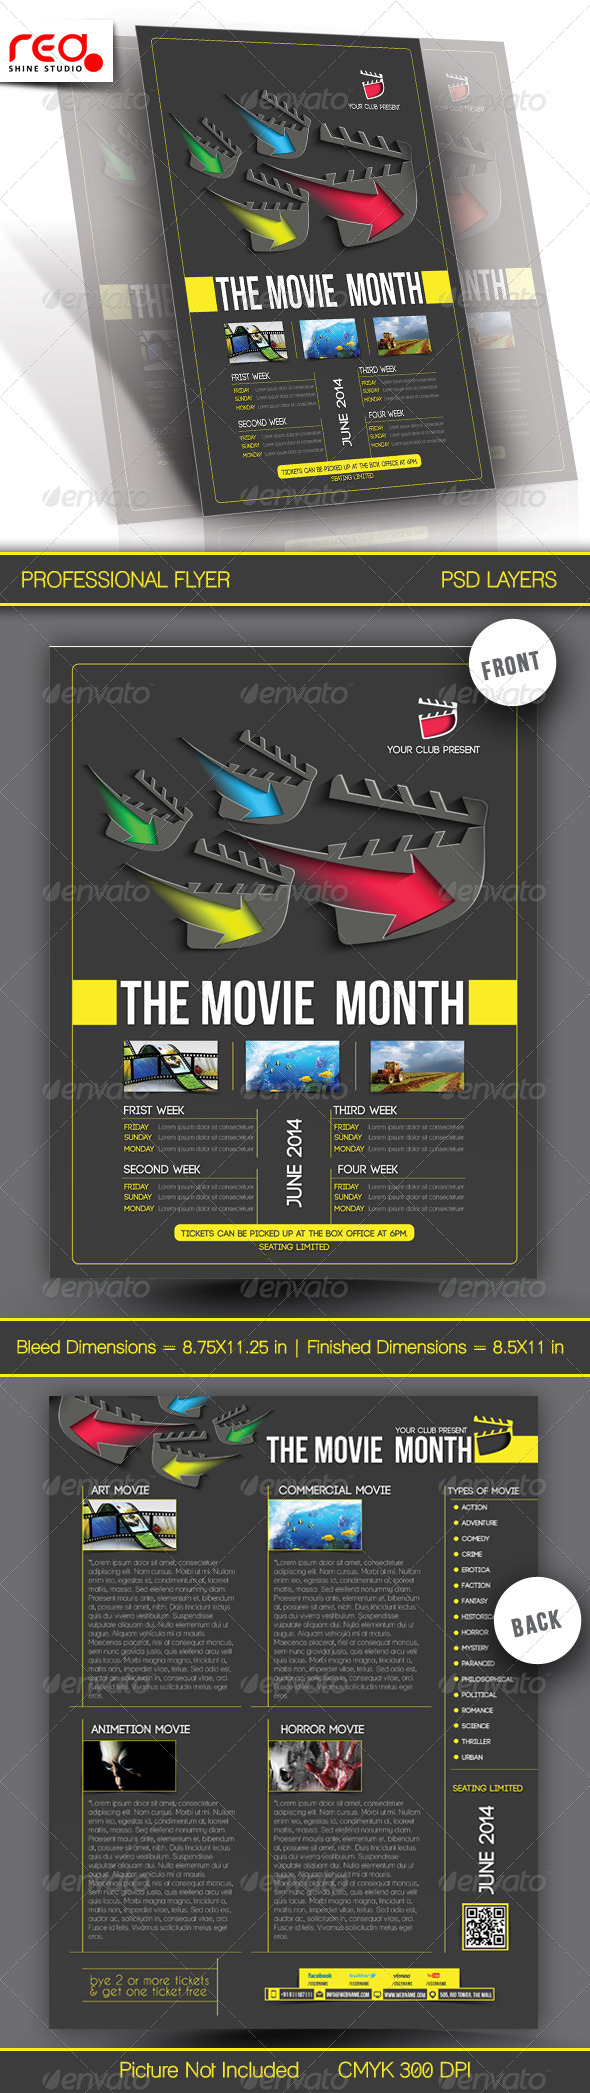 The Movie Month Flyer Template - Commerce Flyers